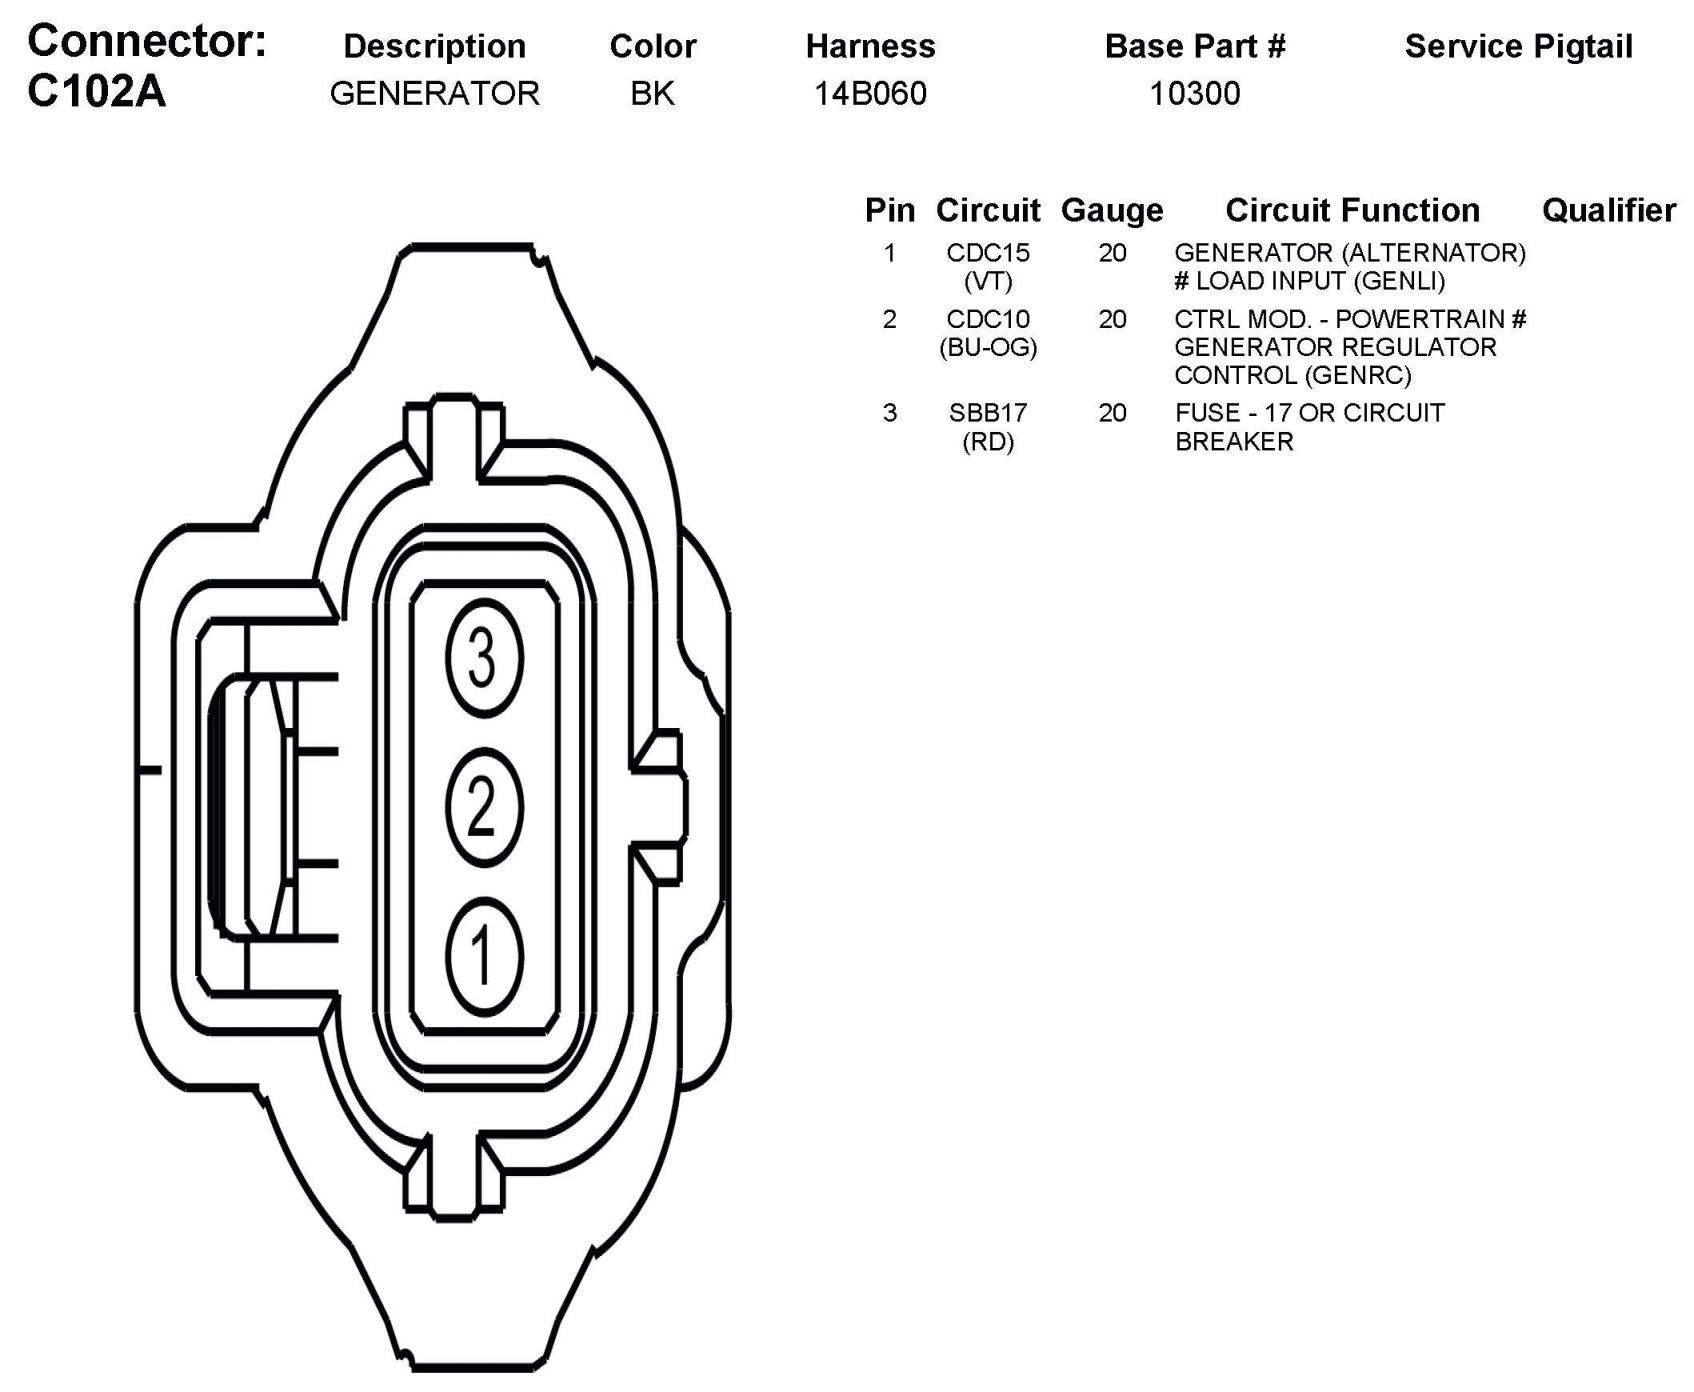 2Wire Alternator Wiring Diagram Generator | Wiring Diagram - Gm 2 Wire Alternator Wiring Diagram